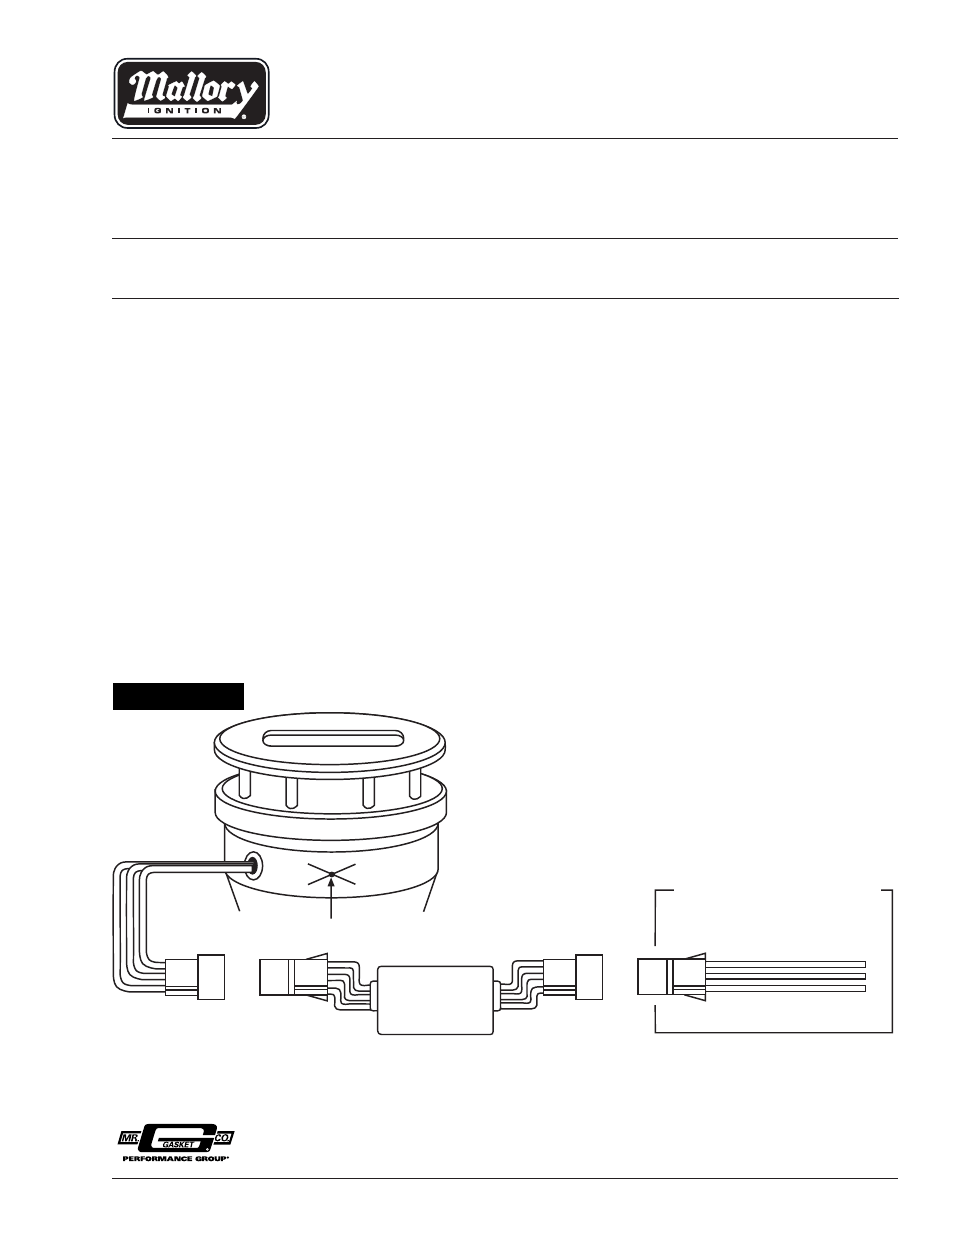 mallory ignition mallory circuit guard 29371 page1?resize\\\\\\\\\\\\\\\=665%2C861 t12 osram ballast wiring diagram t12 to t8 conversion diagram osram ballast wiring diagrams at fashall.co